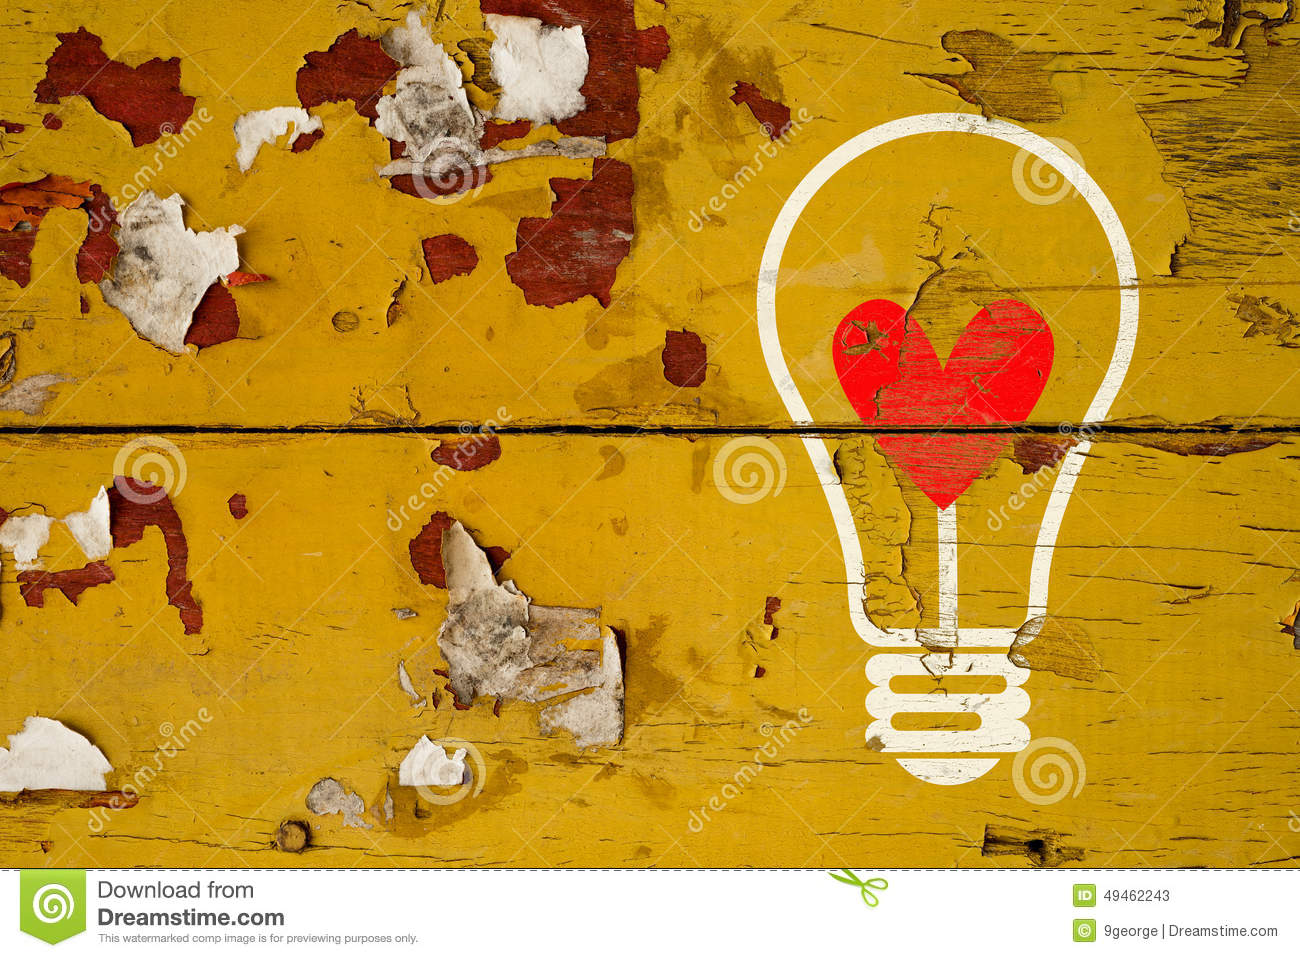 Drawing Love Symbol In Light Bulb On Old Wooden Wall Stock Photo - Image: 49462243